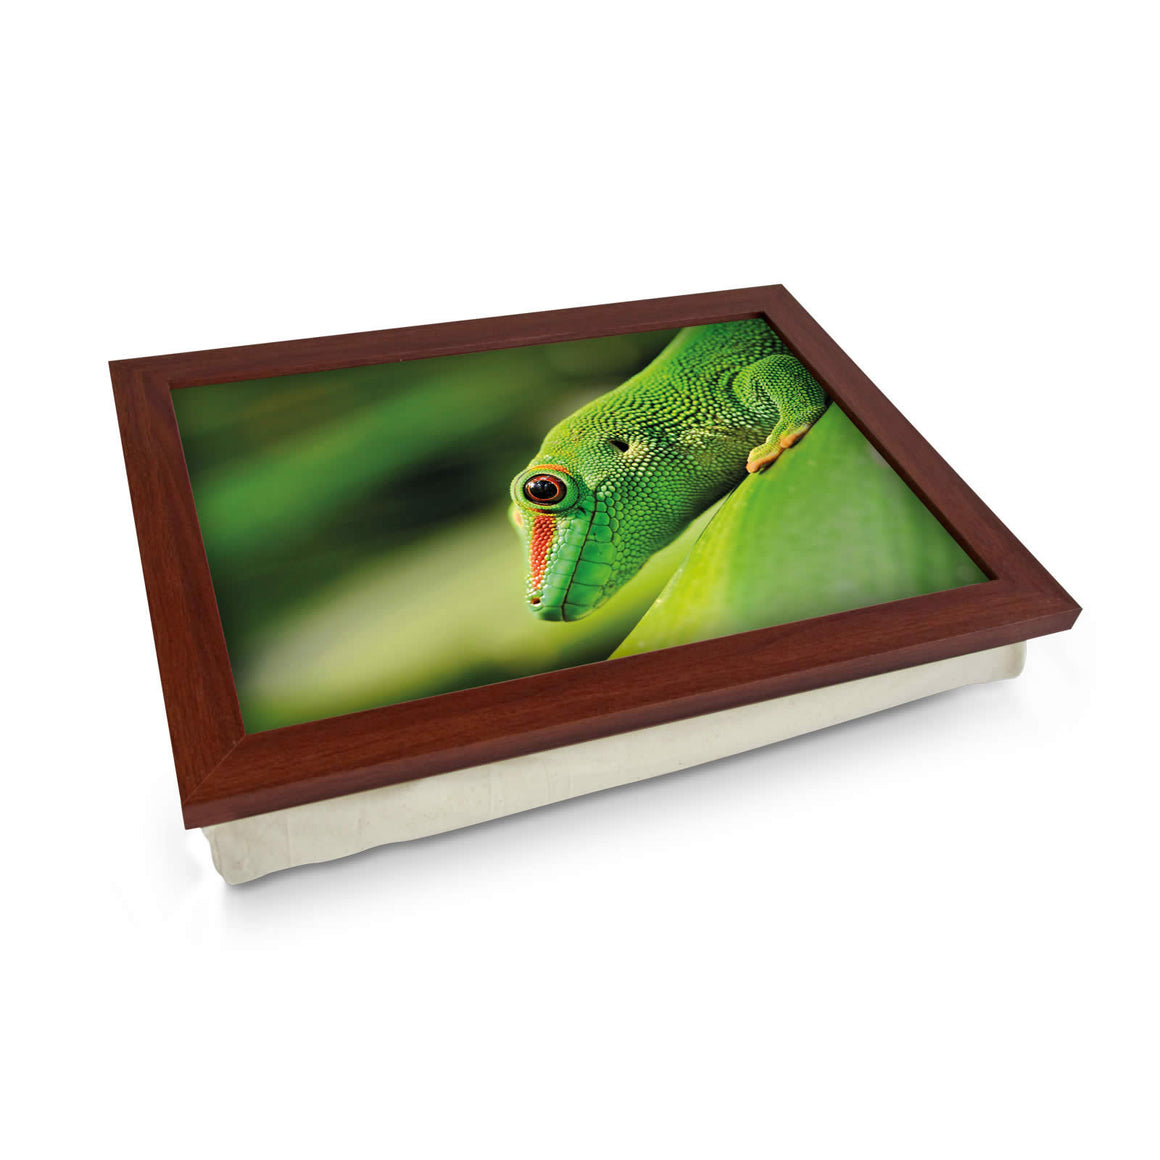 Green Gecko laptray